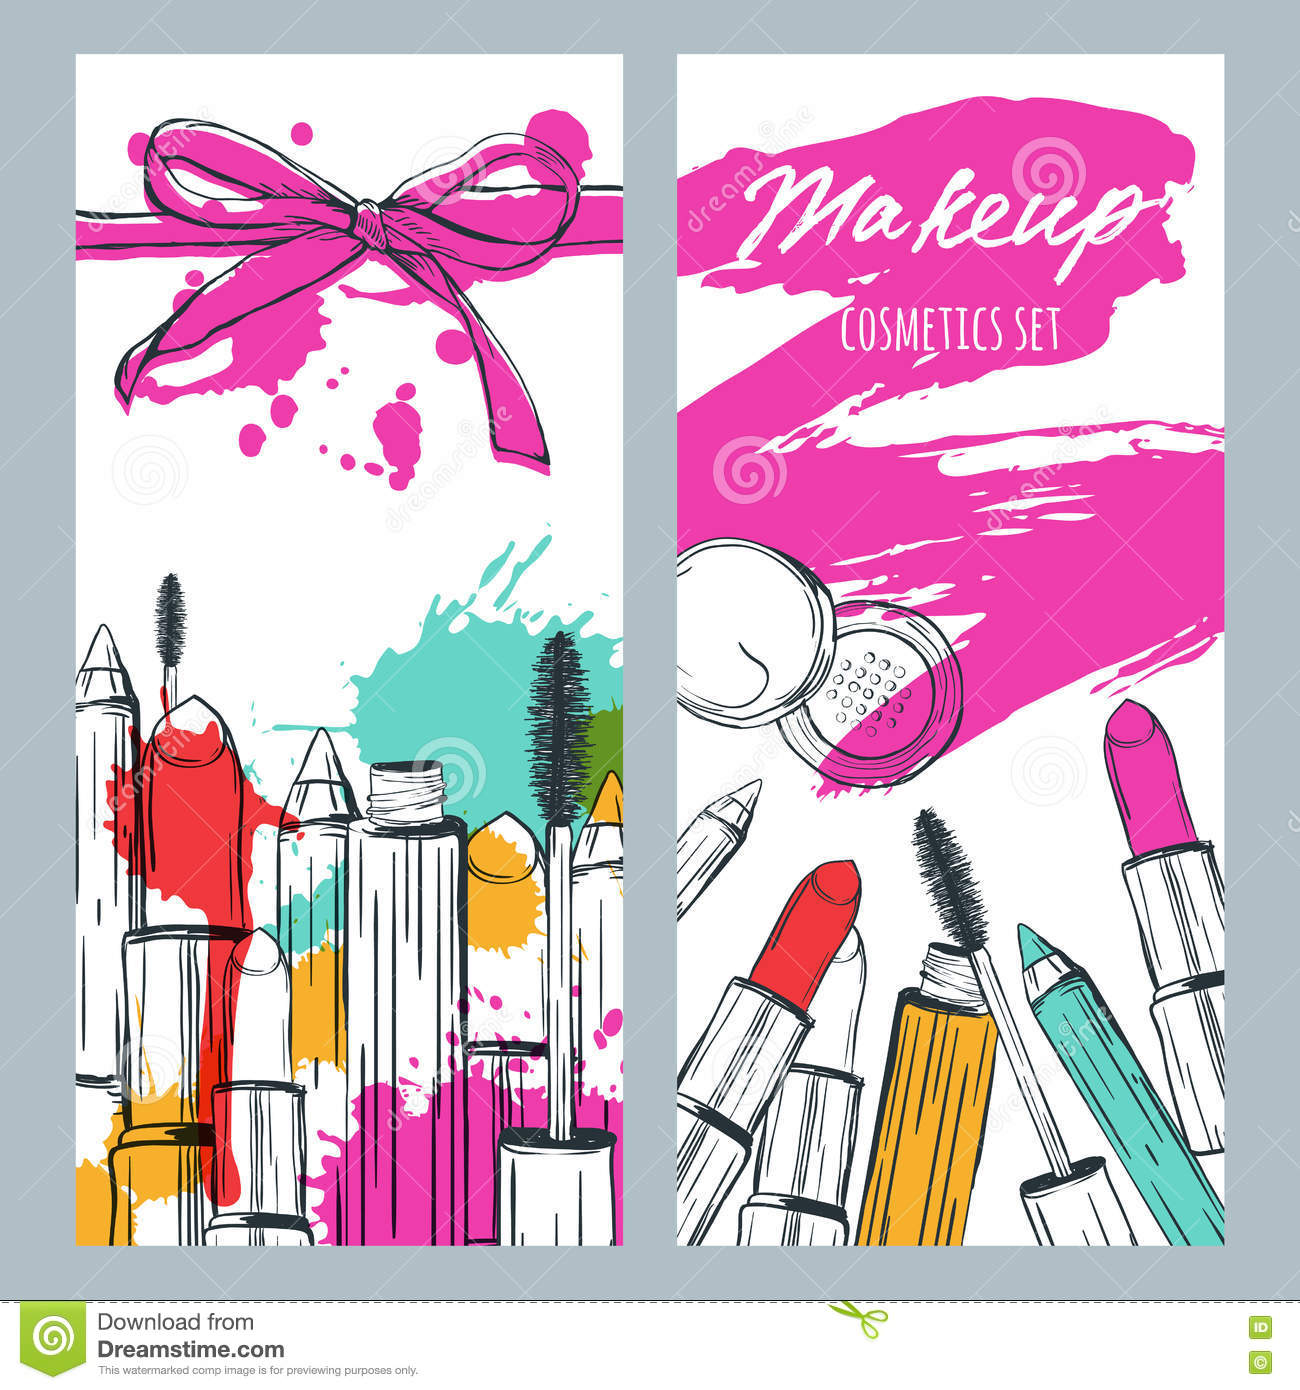 Vector Banners With Doodle Illustration Of Makeup Cosmetics And Lipstick Smears Beauty And Makeup Background Stock Vector Illustration Of Fashion Banners 74058829